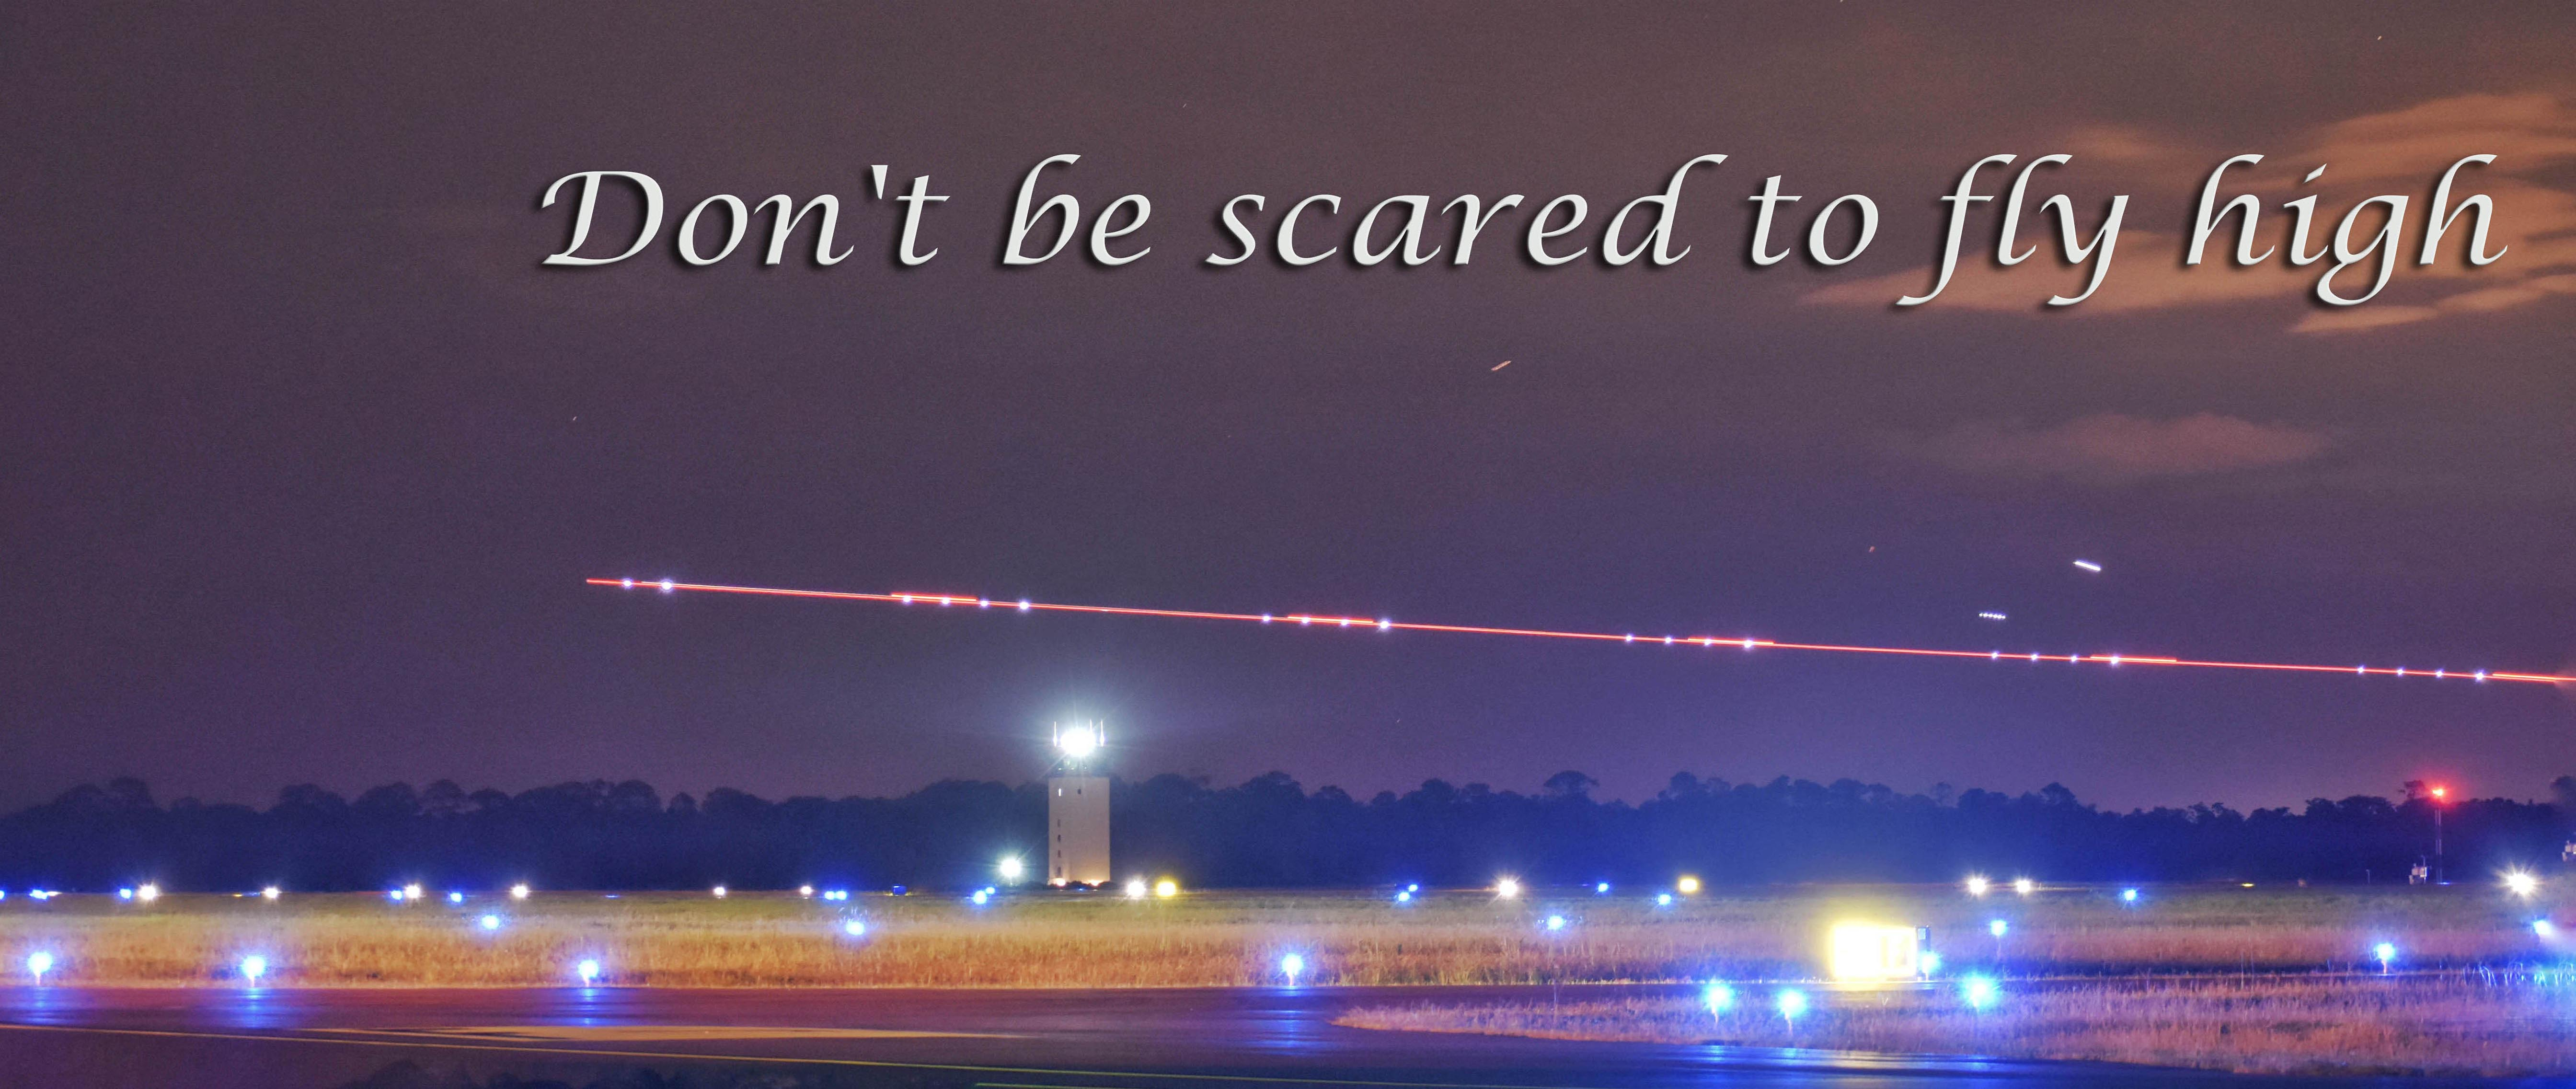 Dont be scared to fly high